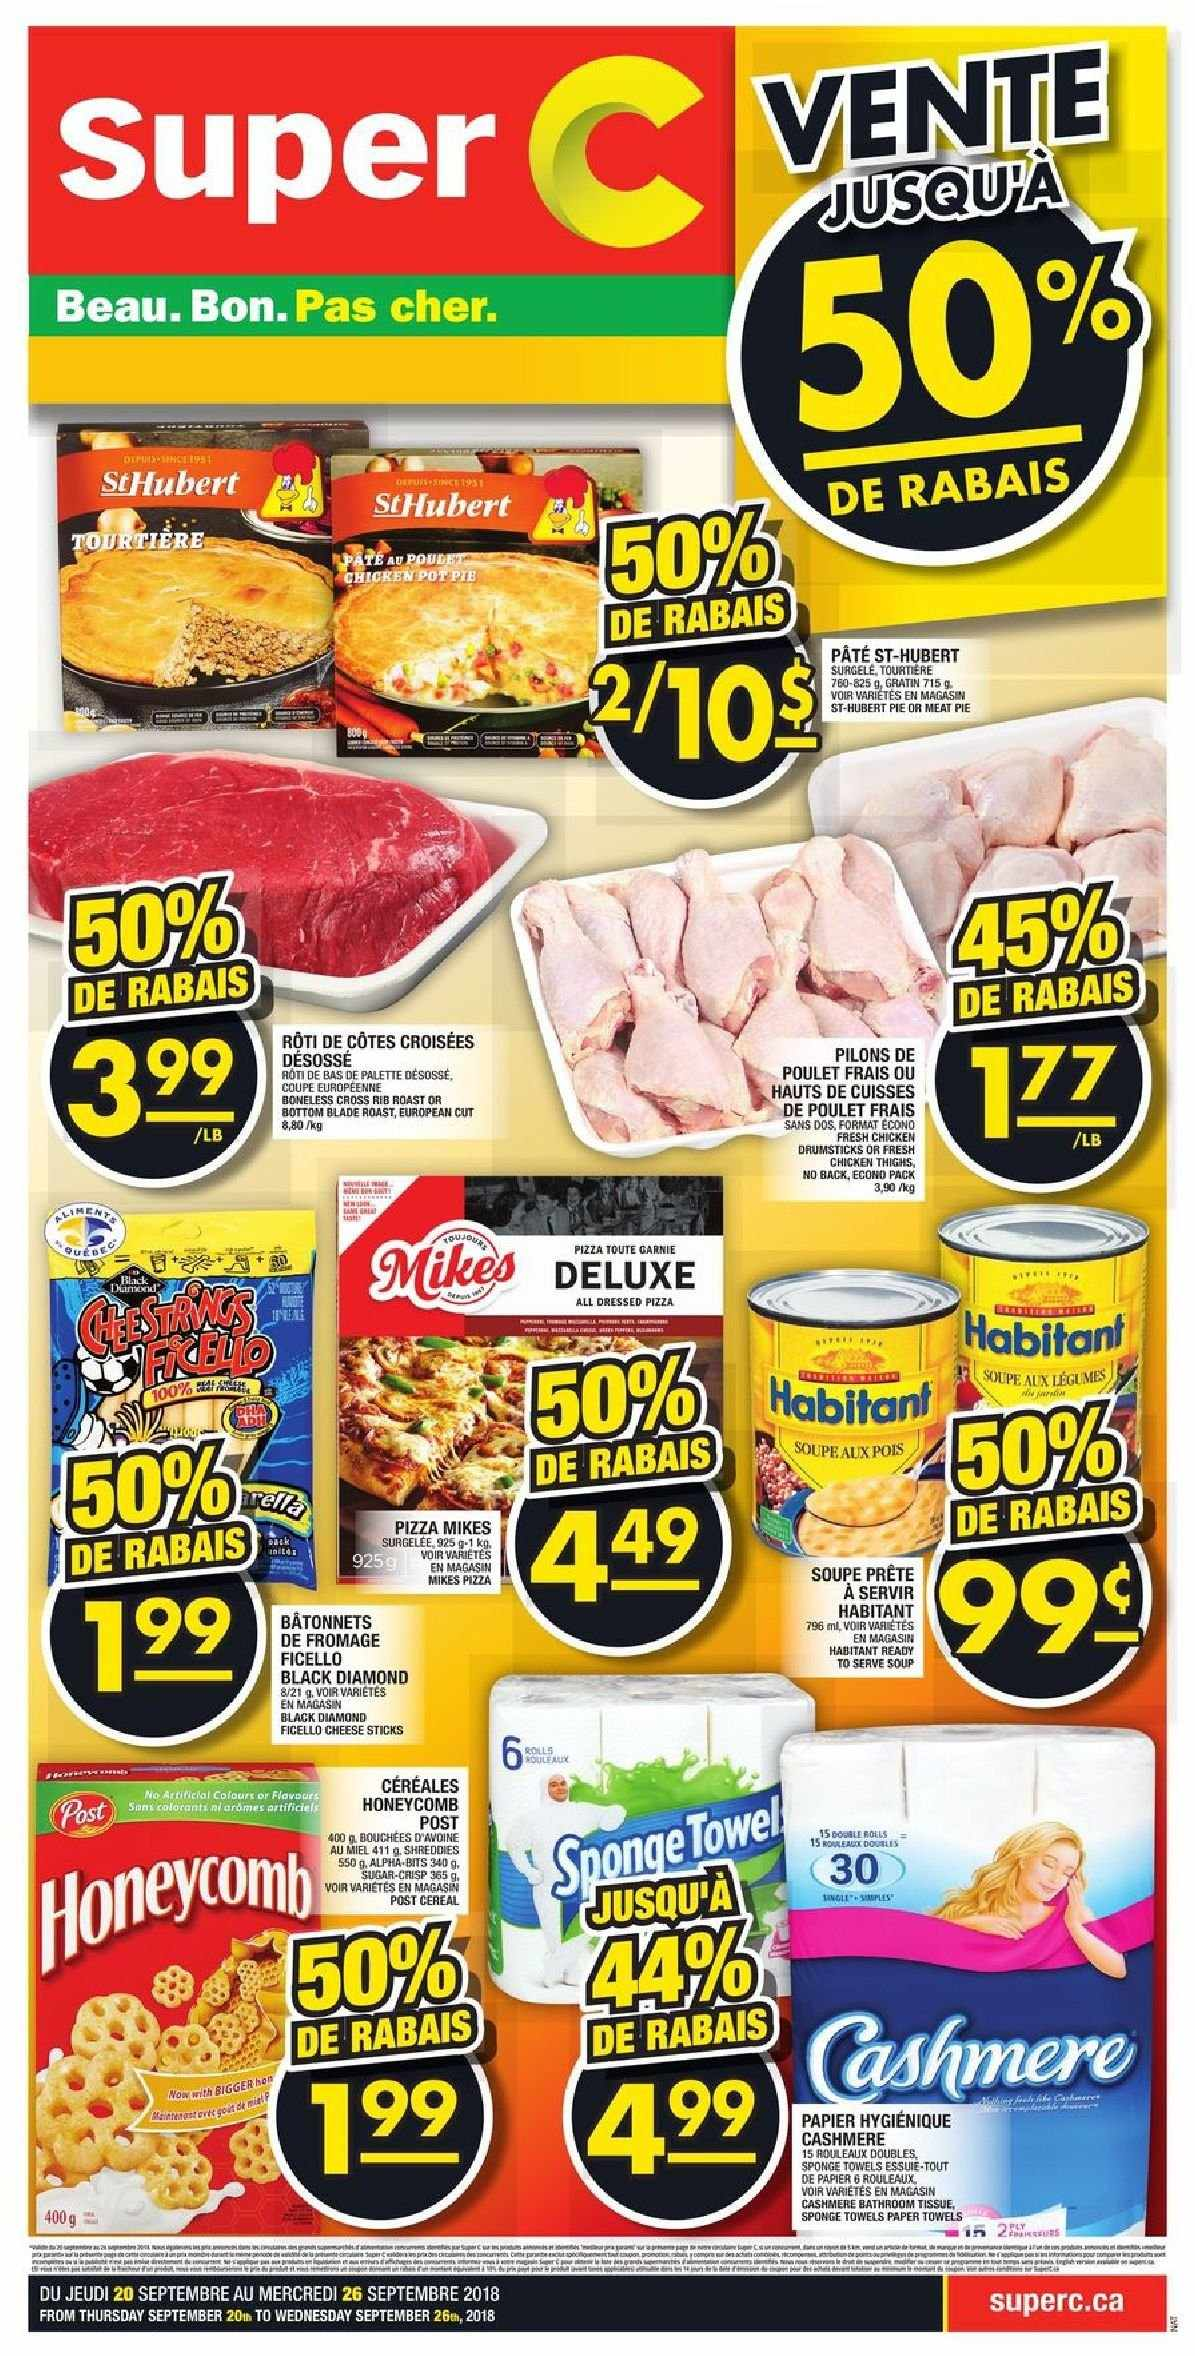 Super C Flyer - September 20, 2018 - September 26, 2018 - Sales products - bottom, cereals, sugar, towel, pizza, chicken, chicken drumsticks, palette, paper towel, chicken thighs, cheese, pie, sponge, cereal, poulet, coupe, fromage, soupe, miel, pâtes. Page 1.